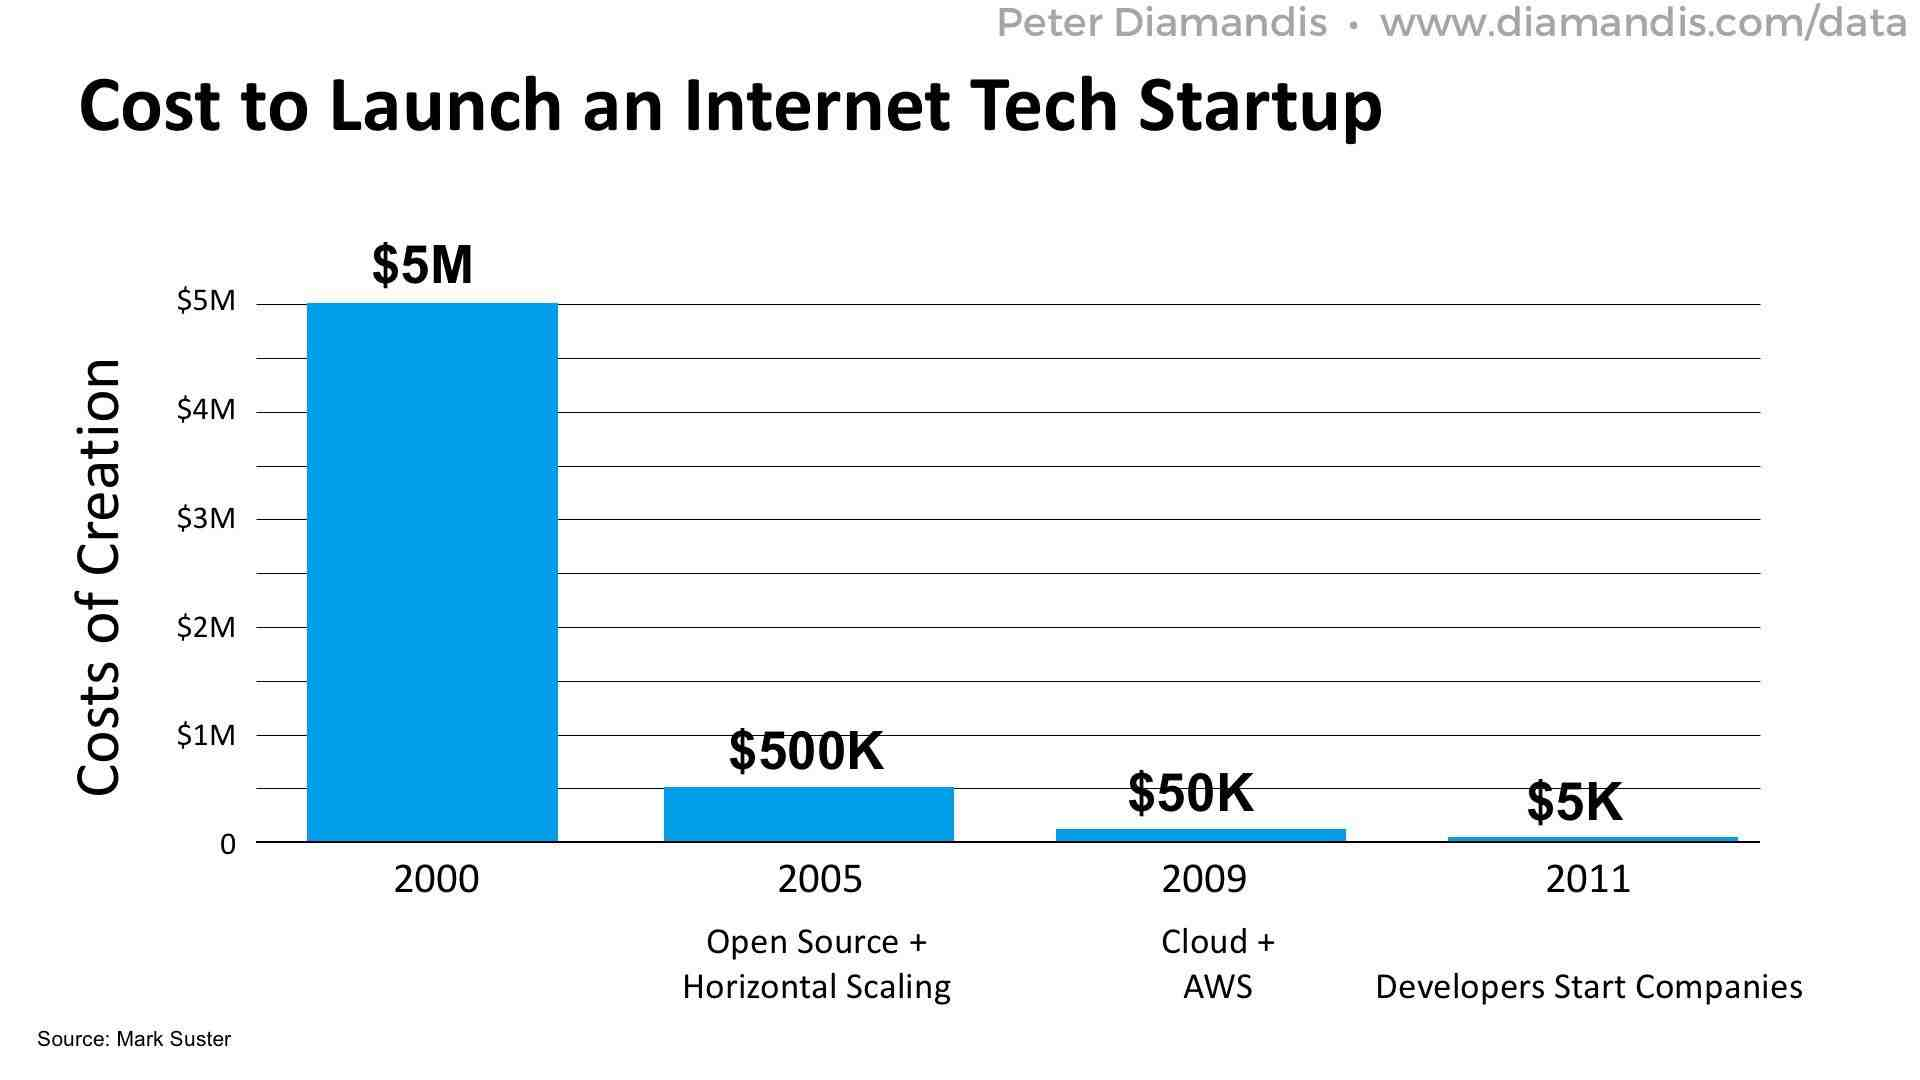 Cost-to-Launch-an-Internet-Tech-Startup